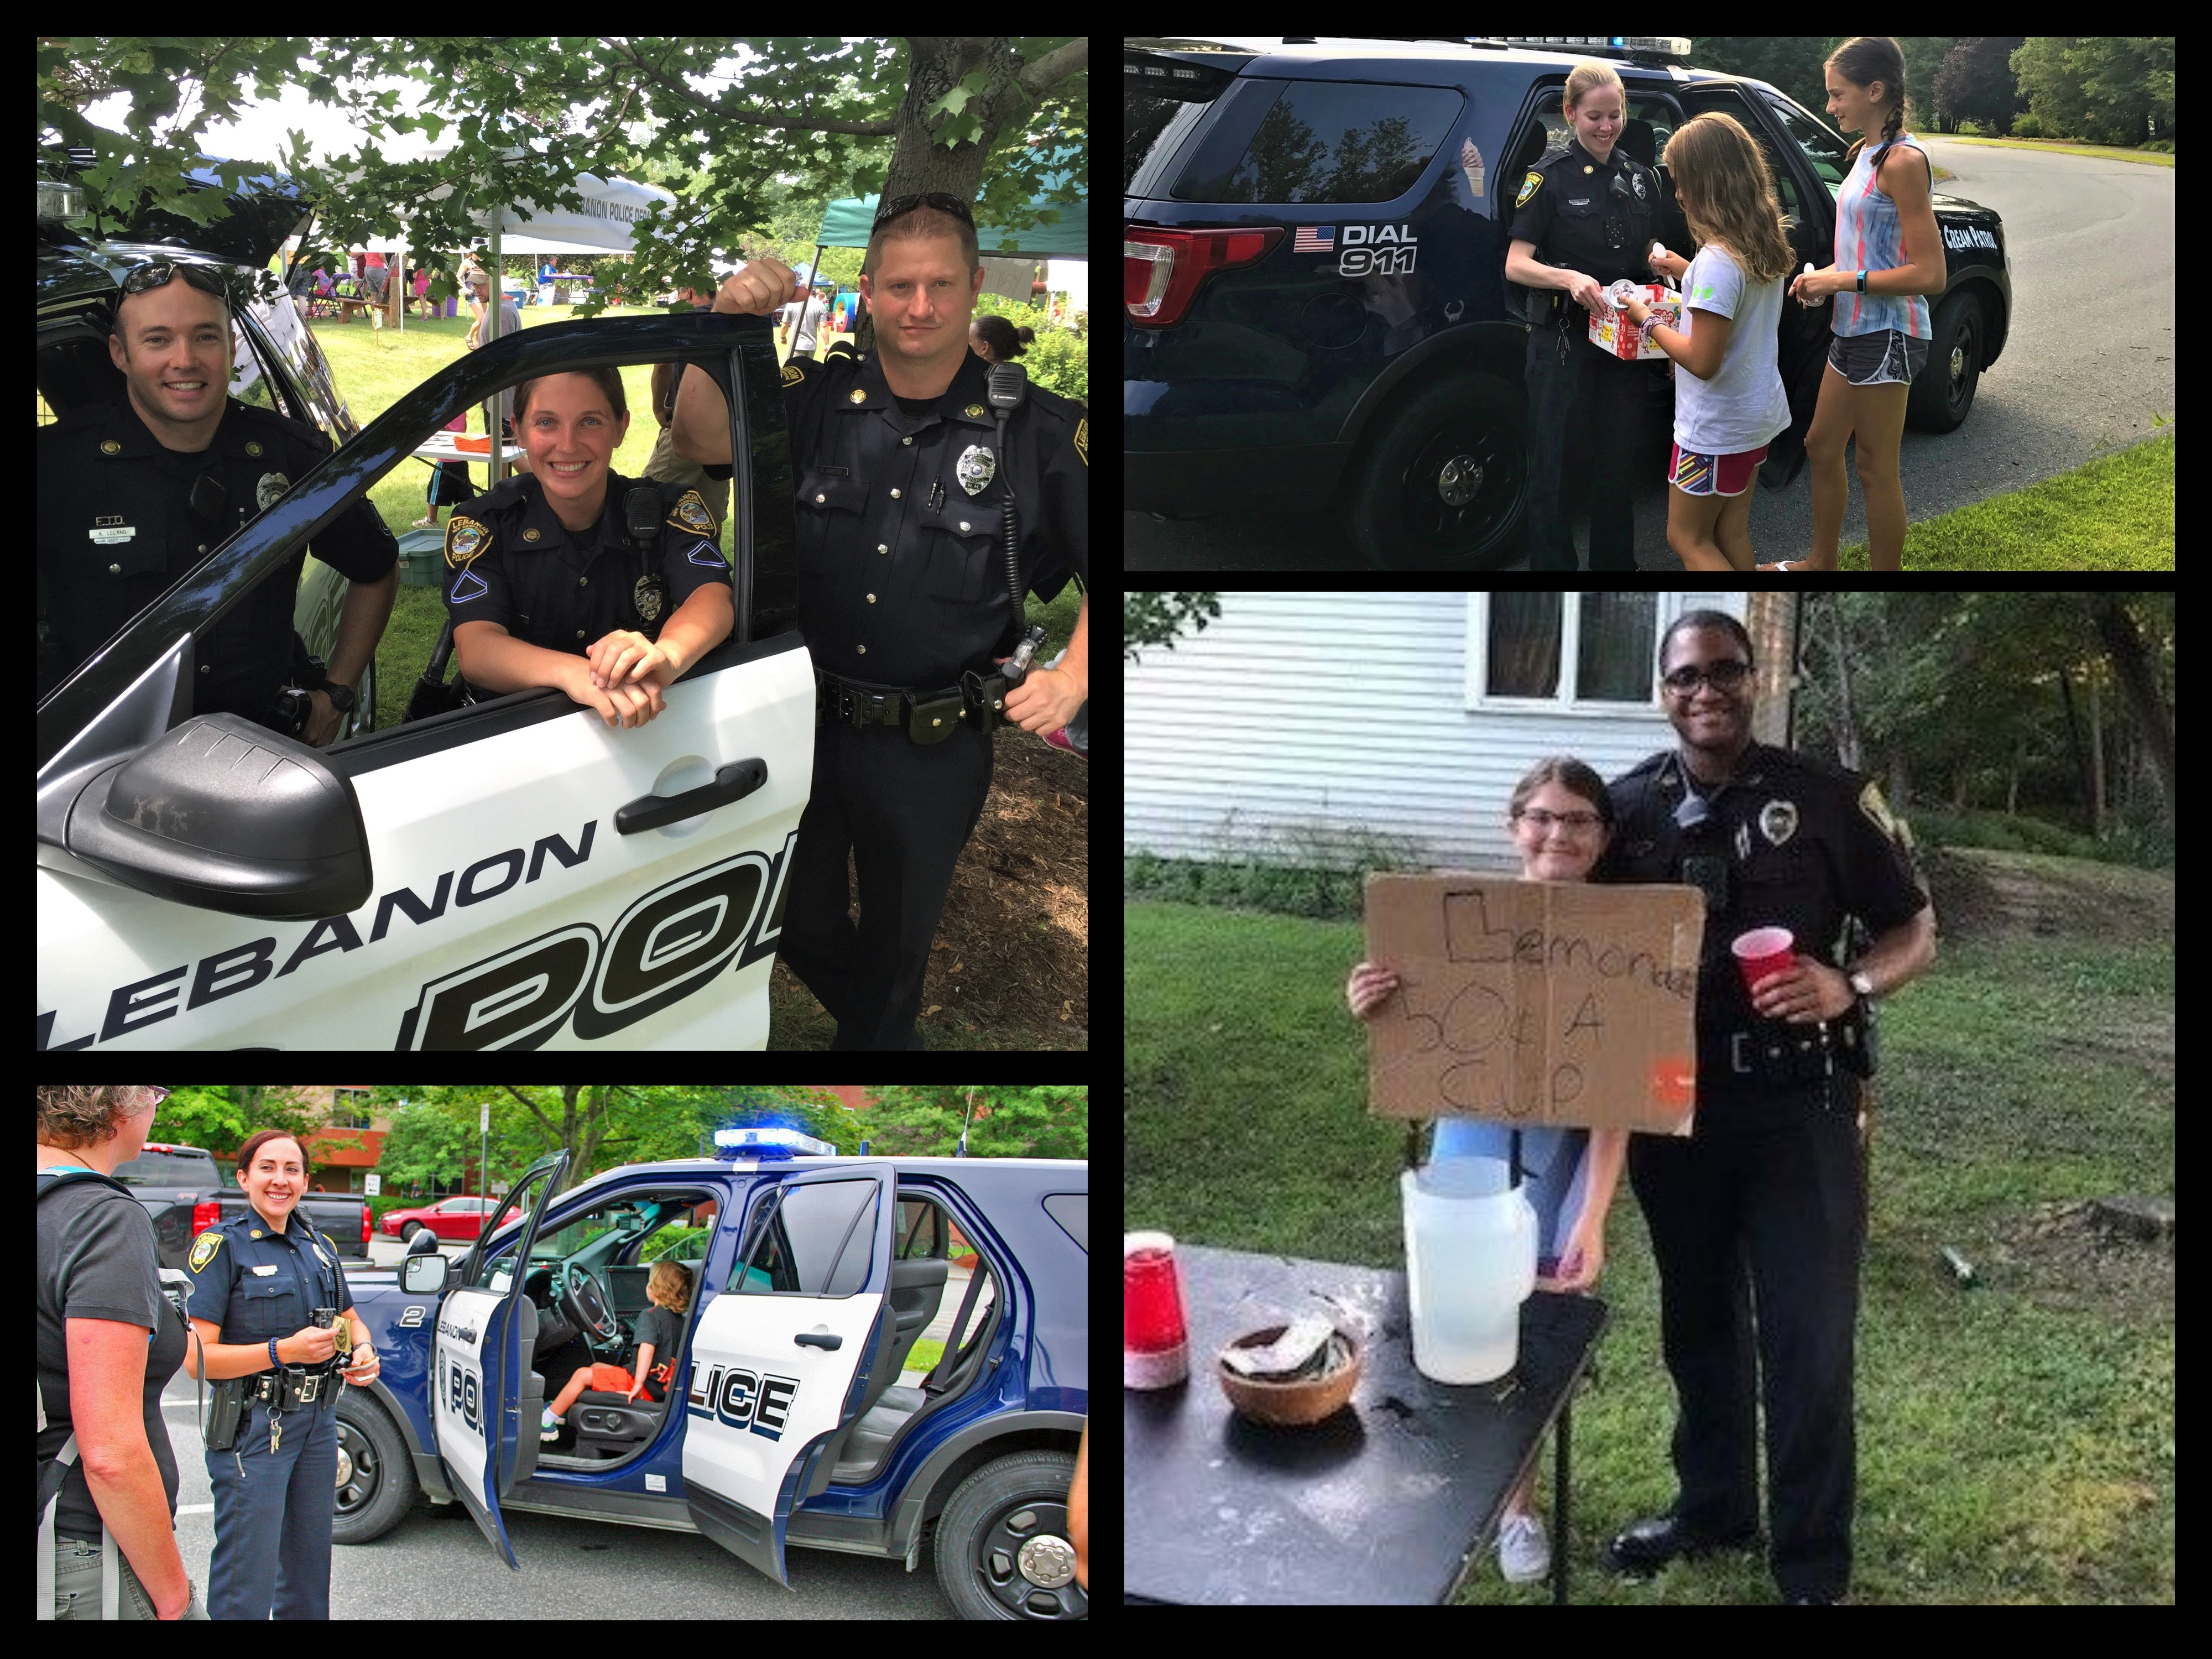 Lebanon Police Department, NH Public Safety Jobs